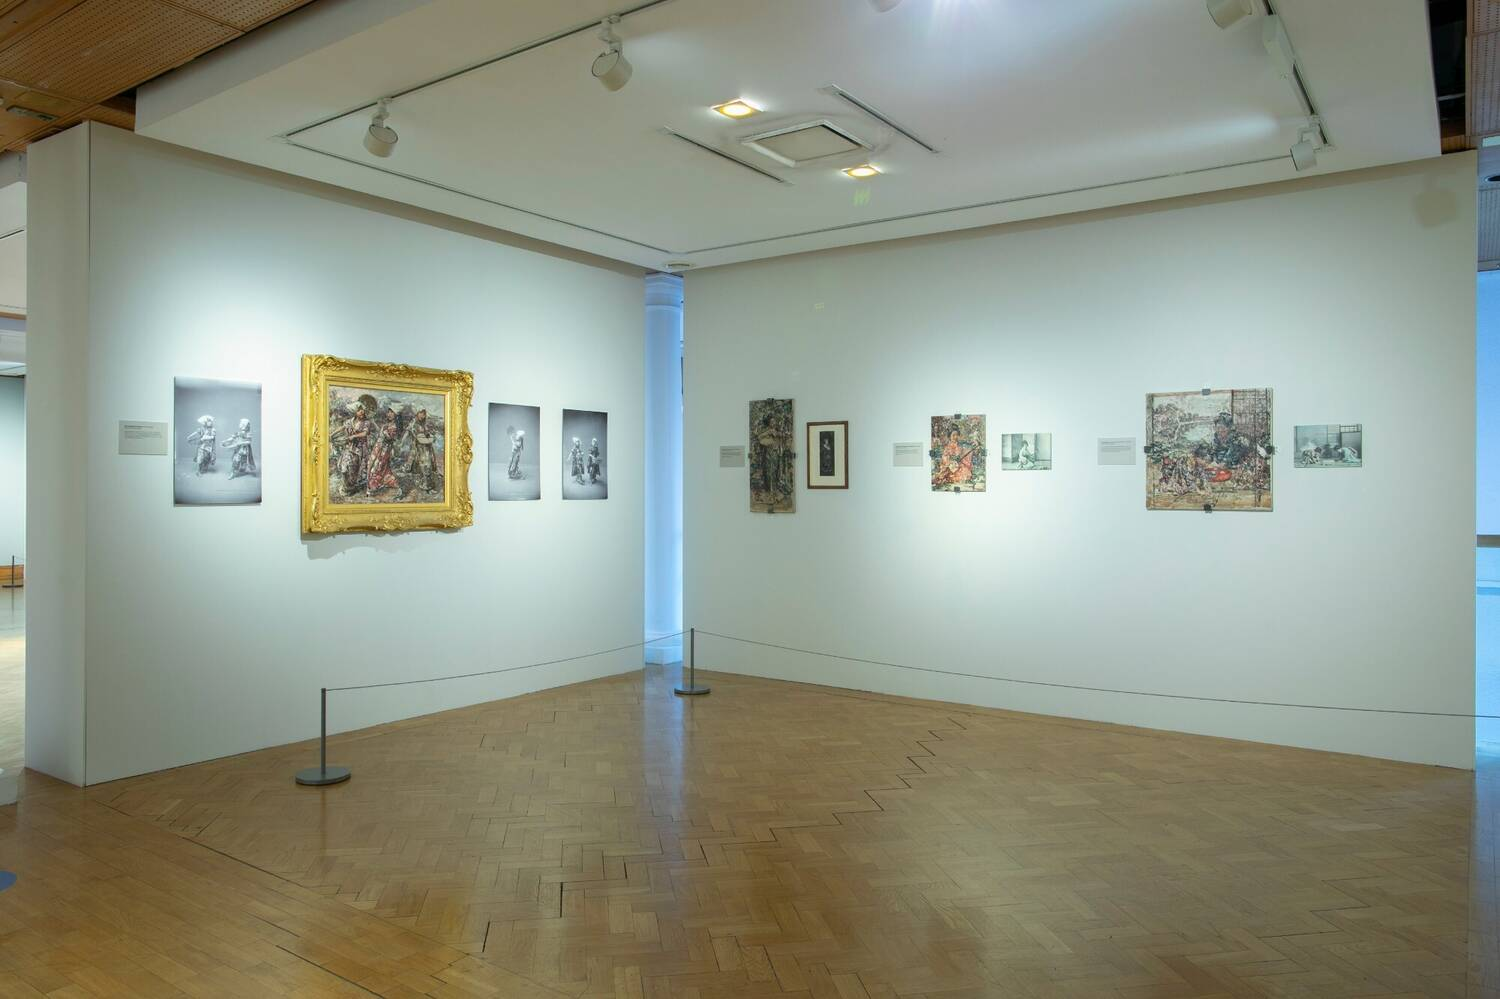 The inside of an art gallery with a wooden parquet floor. Brightly coloured paintings accompanied by a mix of delicately coloured and black and white photos are visible on the white walls.